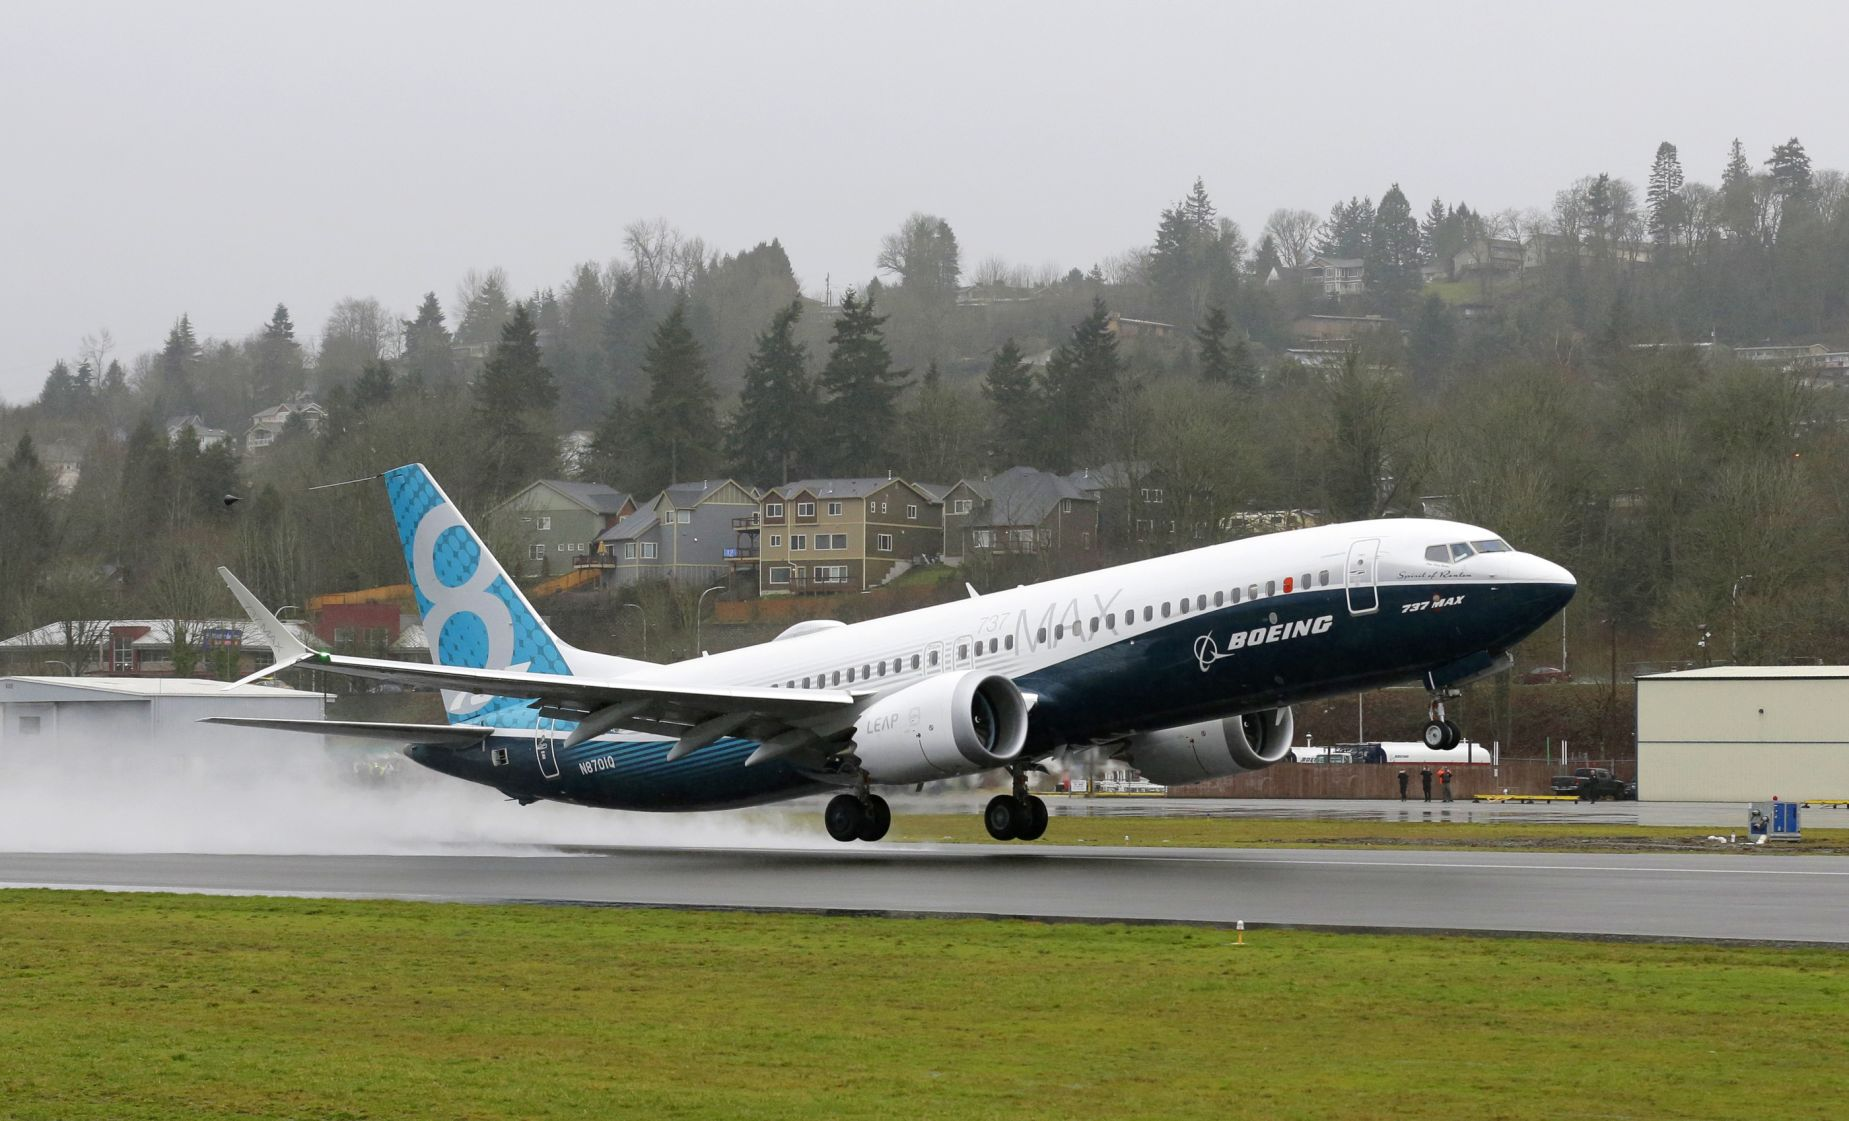 737 max test flight has boeing looking to retake single aisle market rh postandcourier com